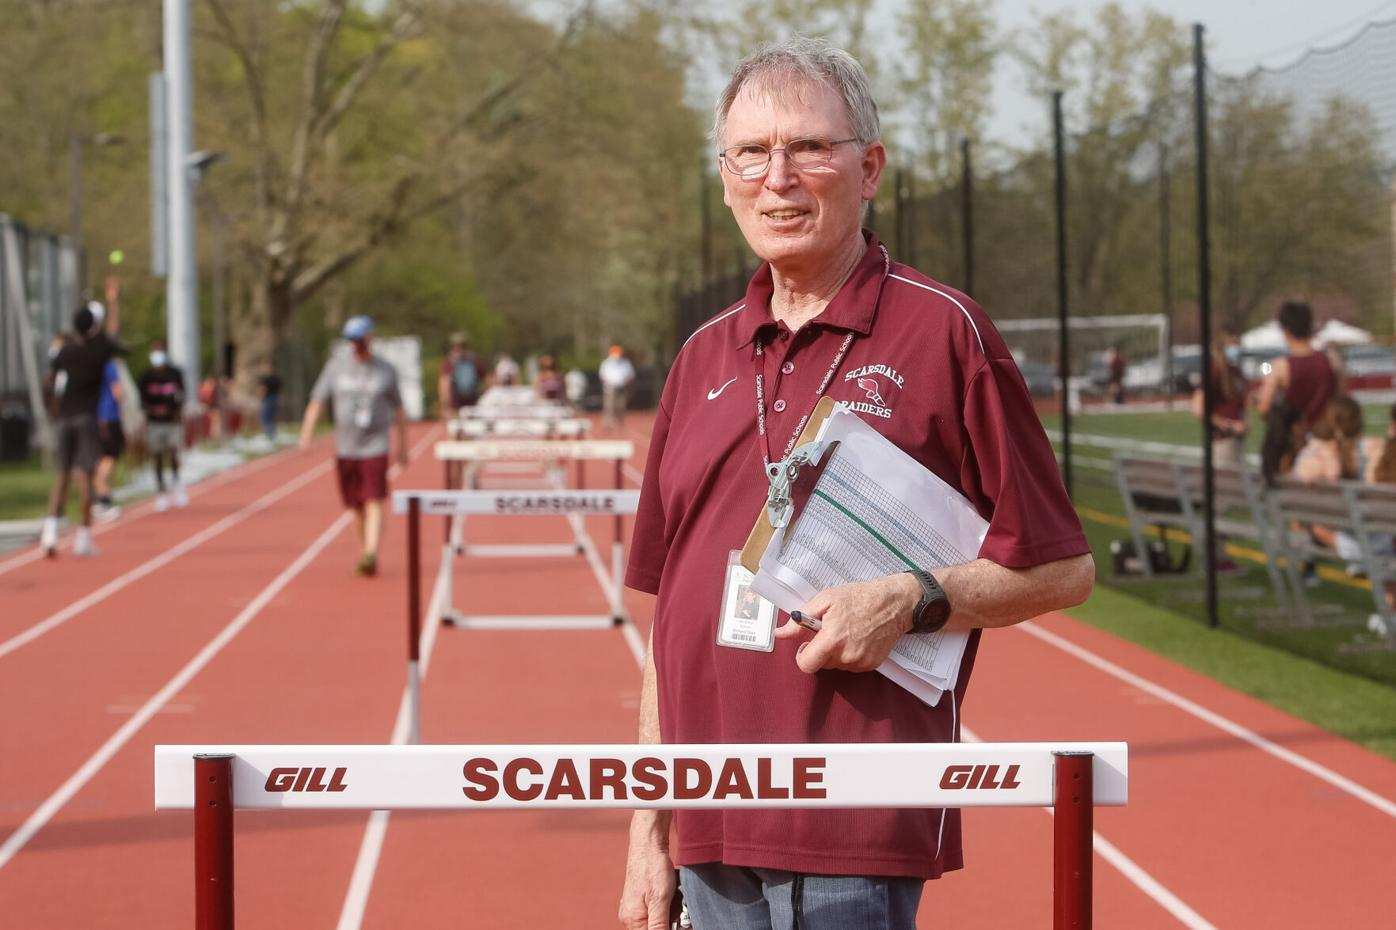 Scarsdale track